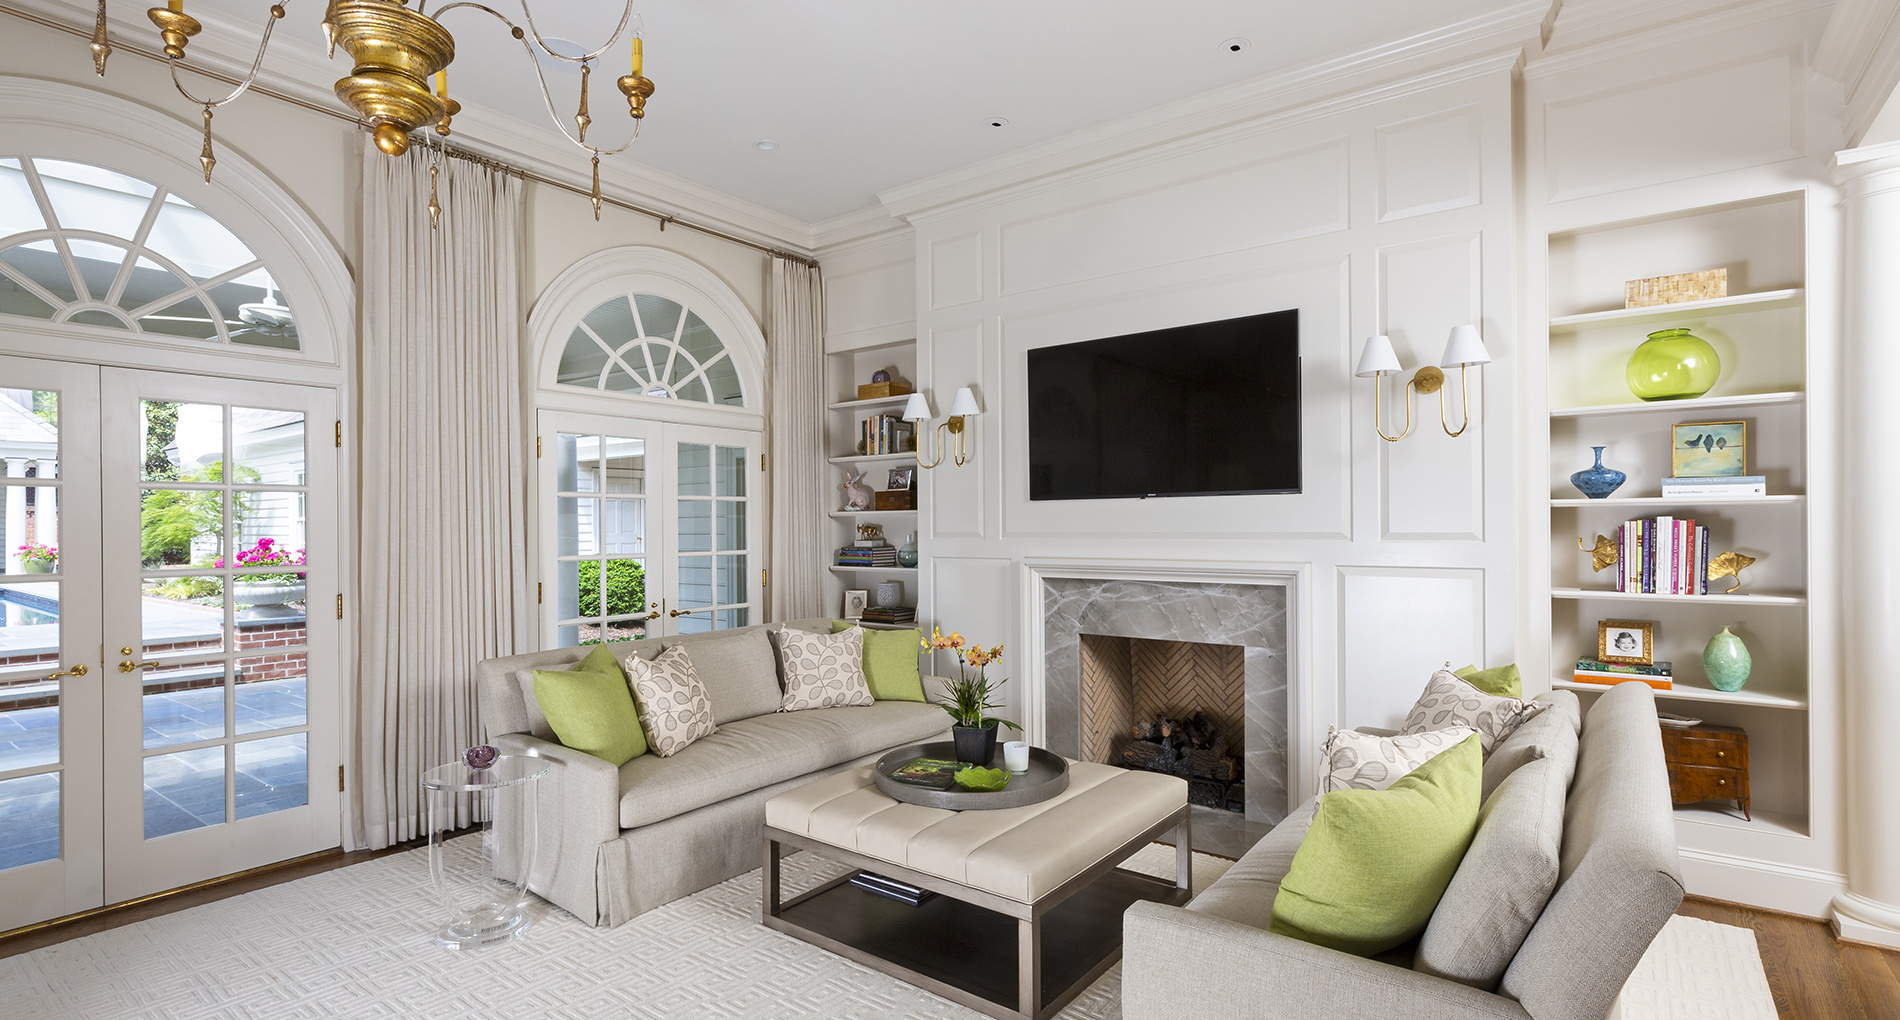 Custom all neutral living space with green couch pillows and a fireplace